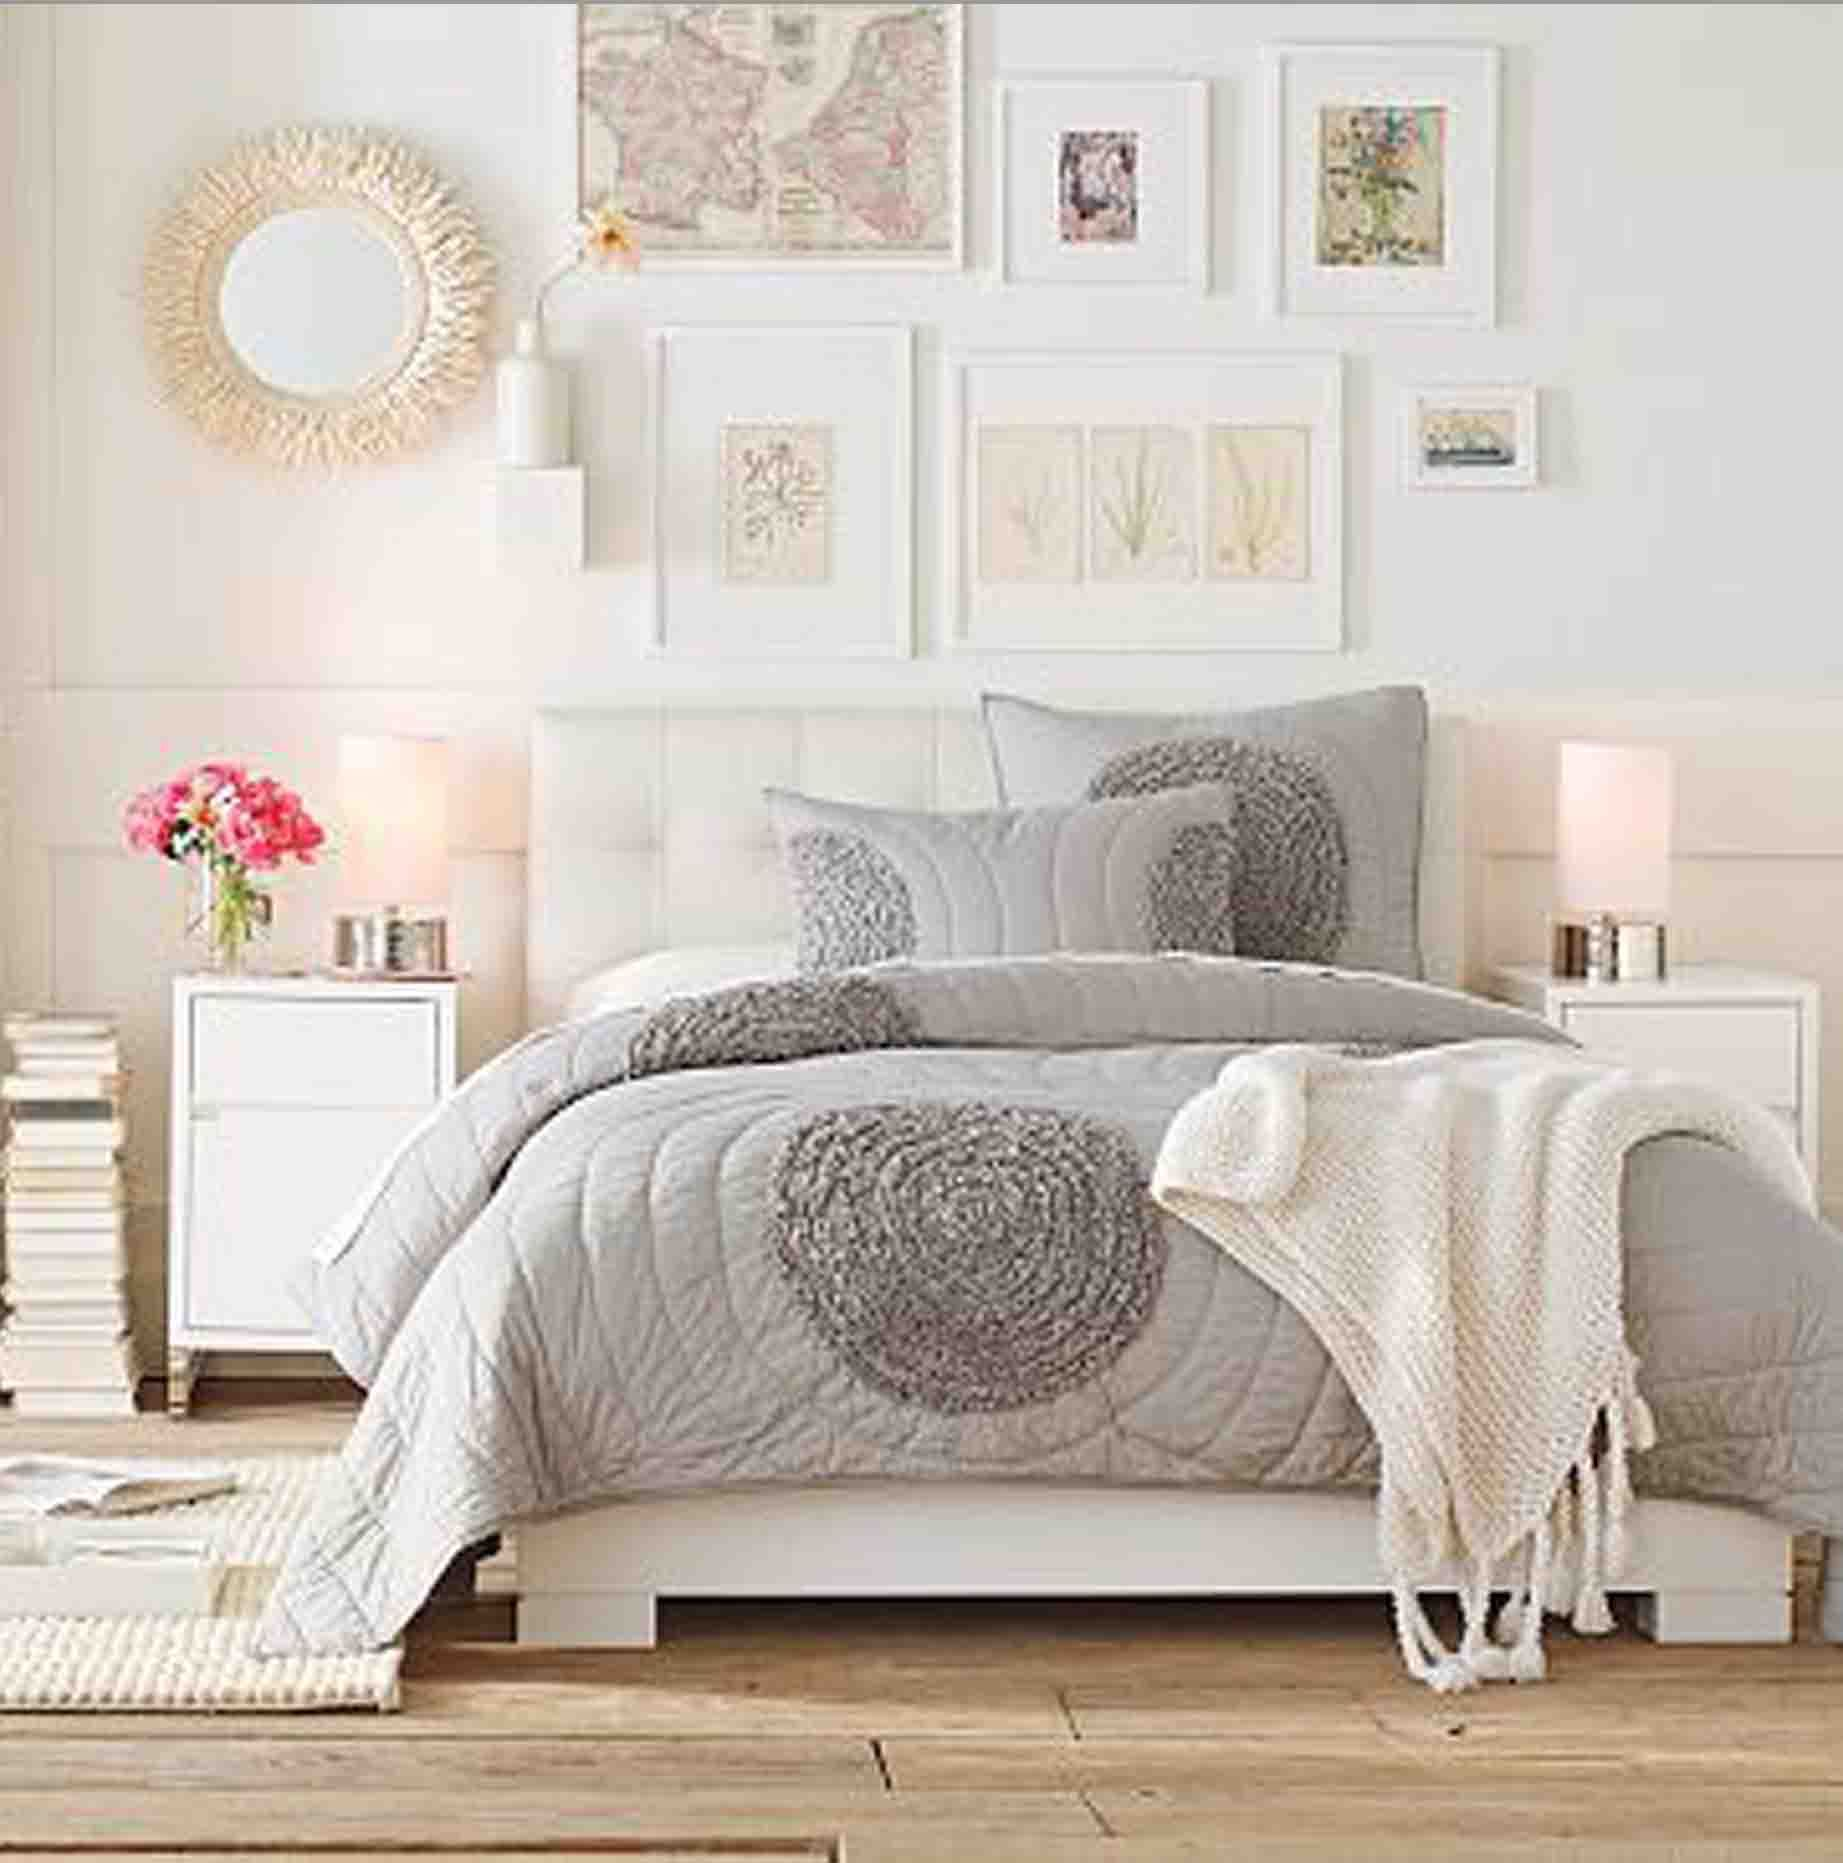 Bedroom Colour Grey Bedroom Wall Almirah Designs Green Bedroom Accessories Vintage Bedroom Accessories: Light And Bright Bedroom Ideas. Grey, Nutral, White